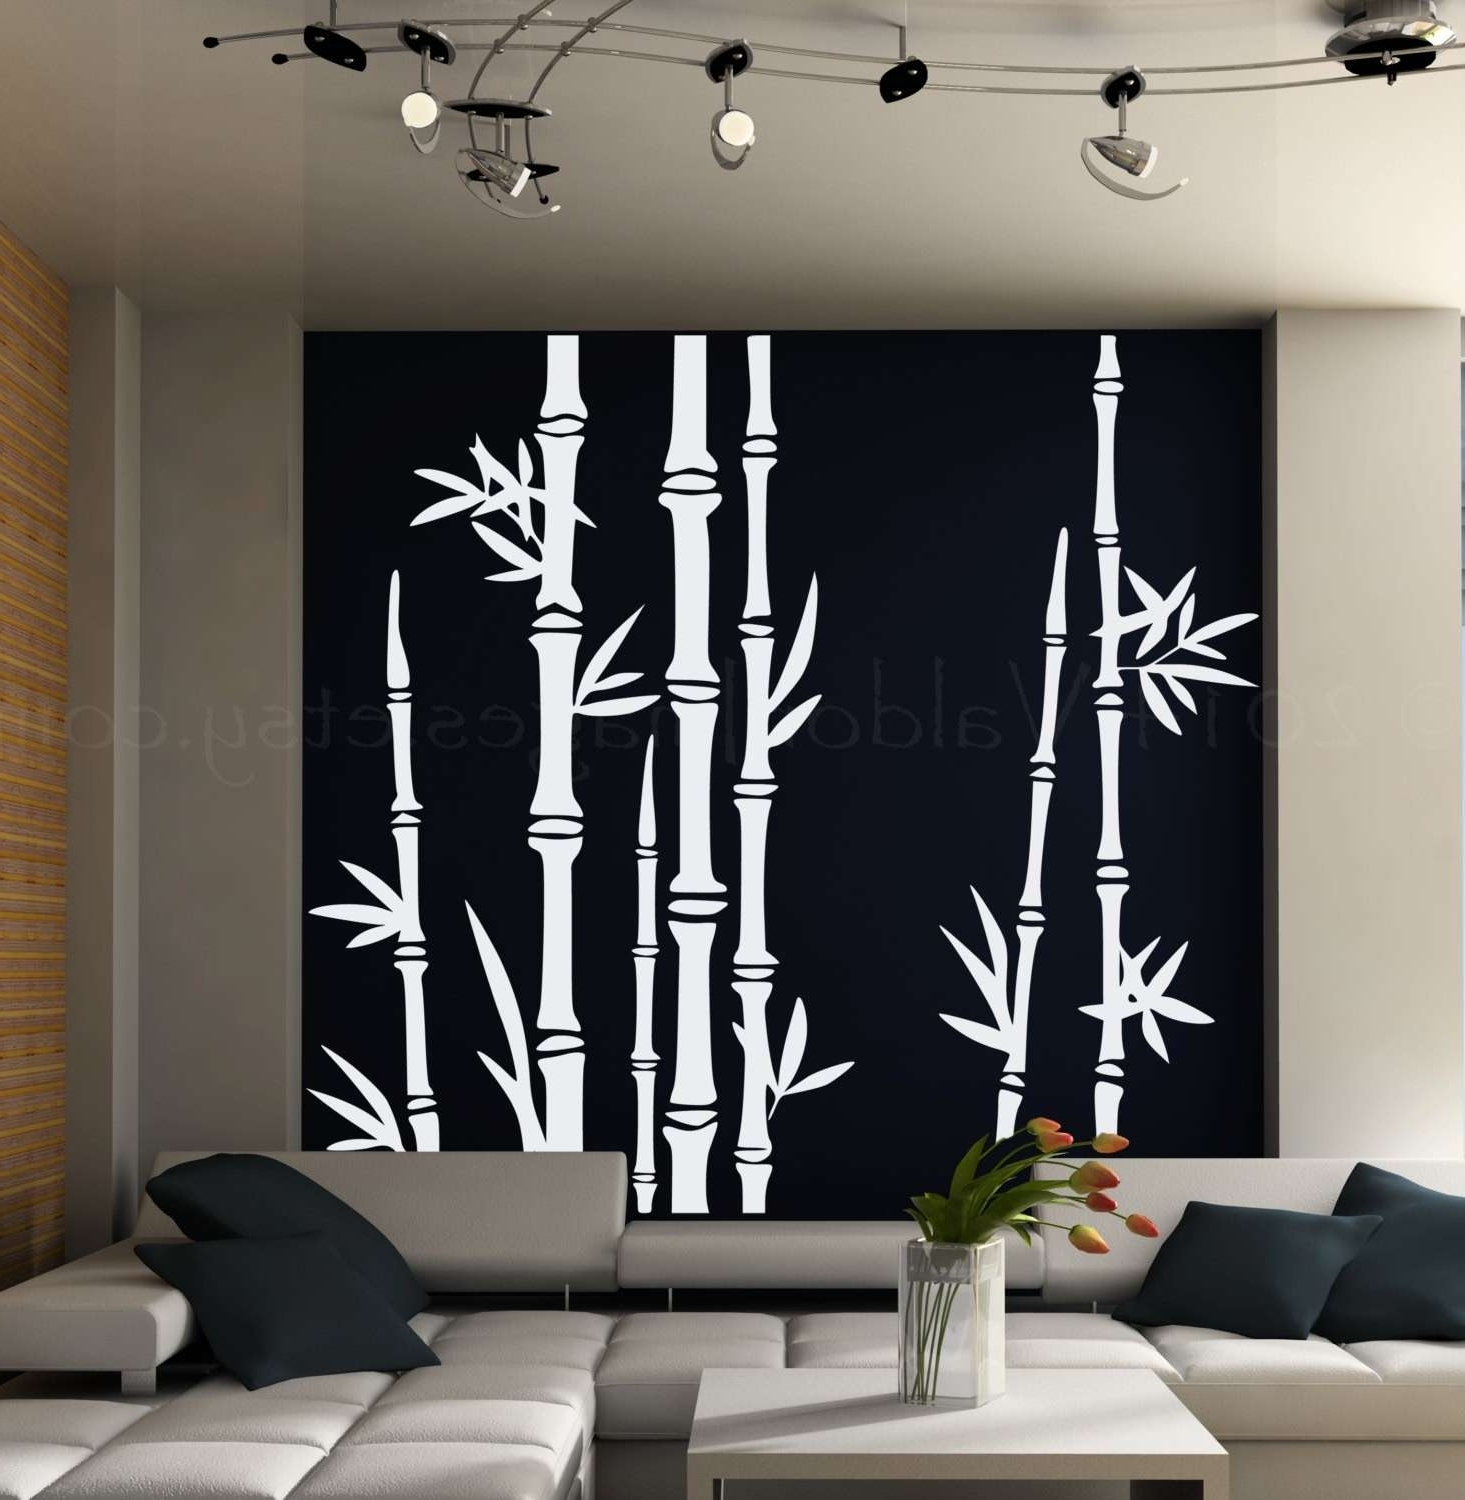 Preferred Bamboo Wall Art Intended For Bamboo Wall Art New Bamboo Wall Decal Asian Art Wall Stickers Lush (View 13 of 15)